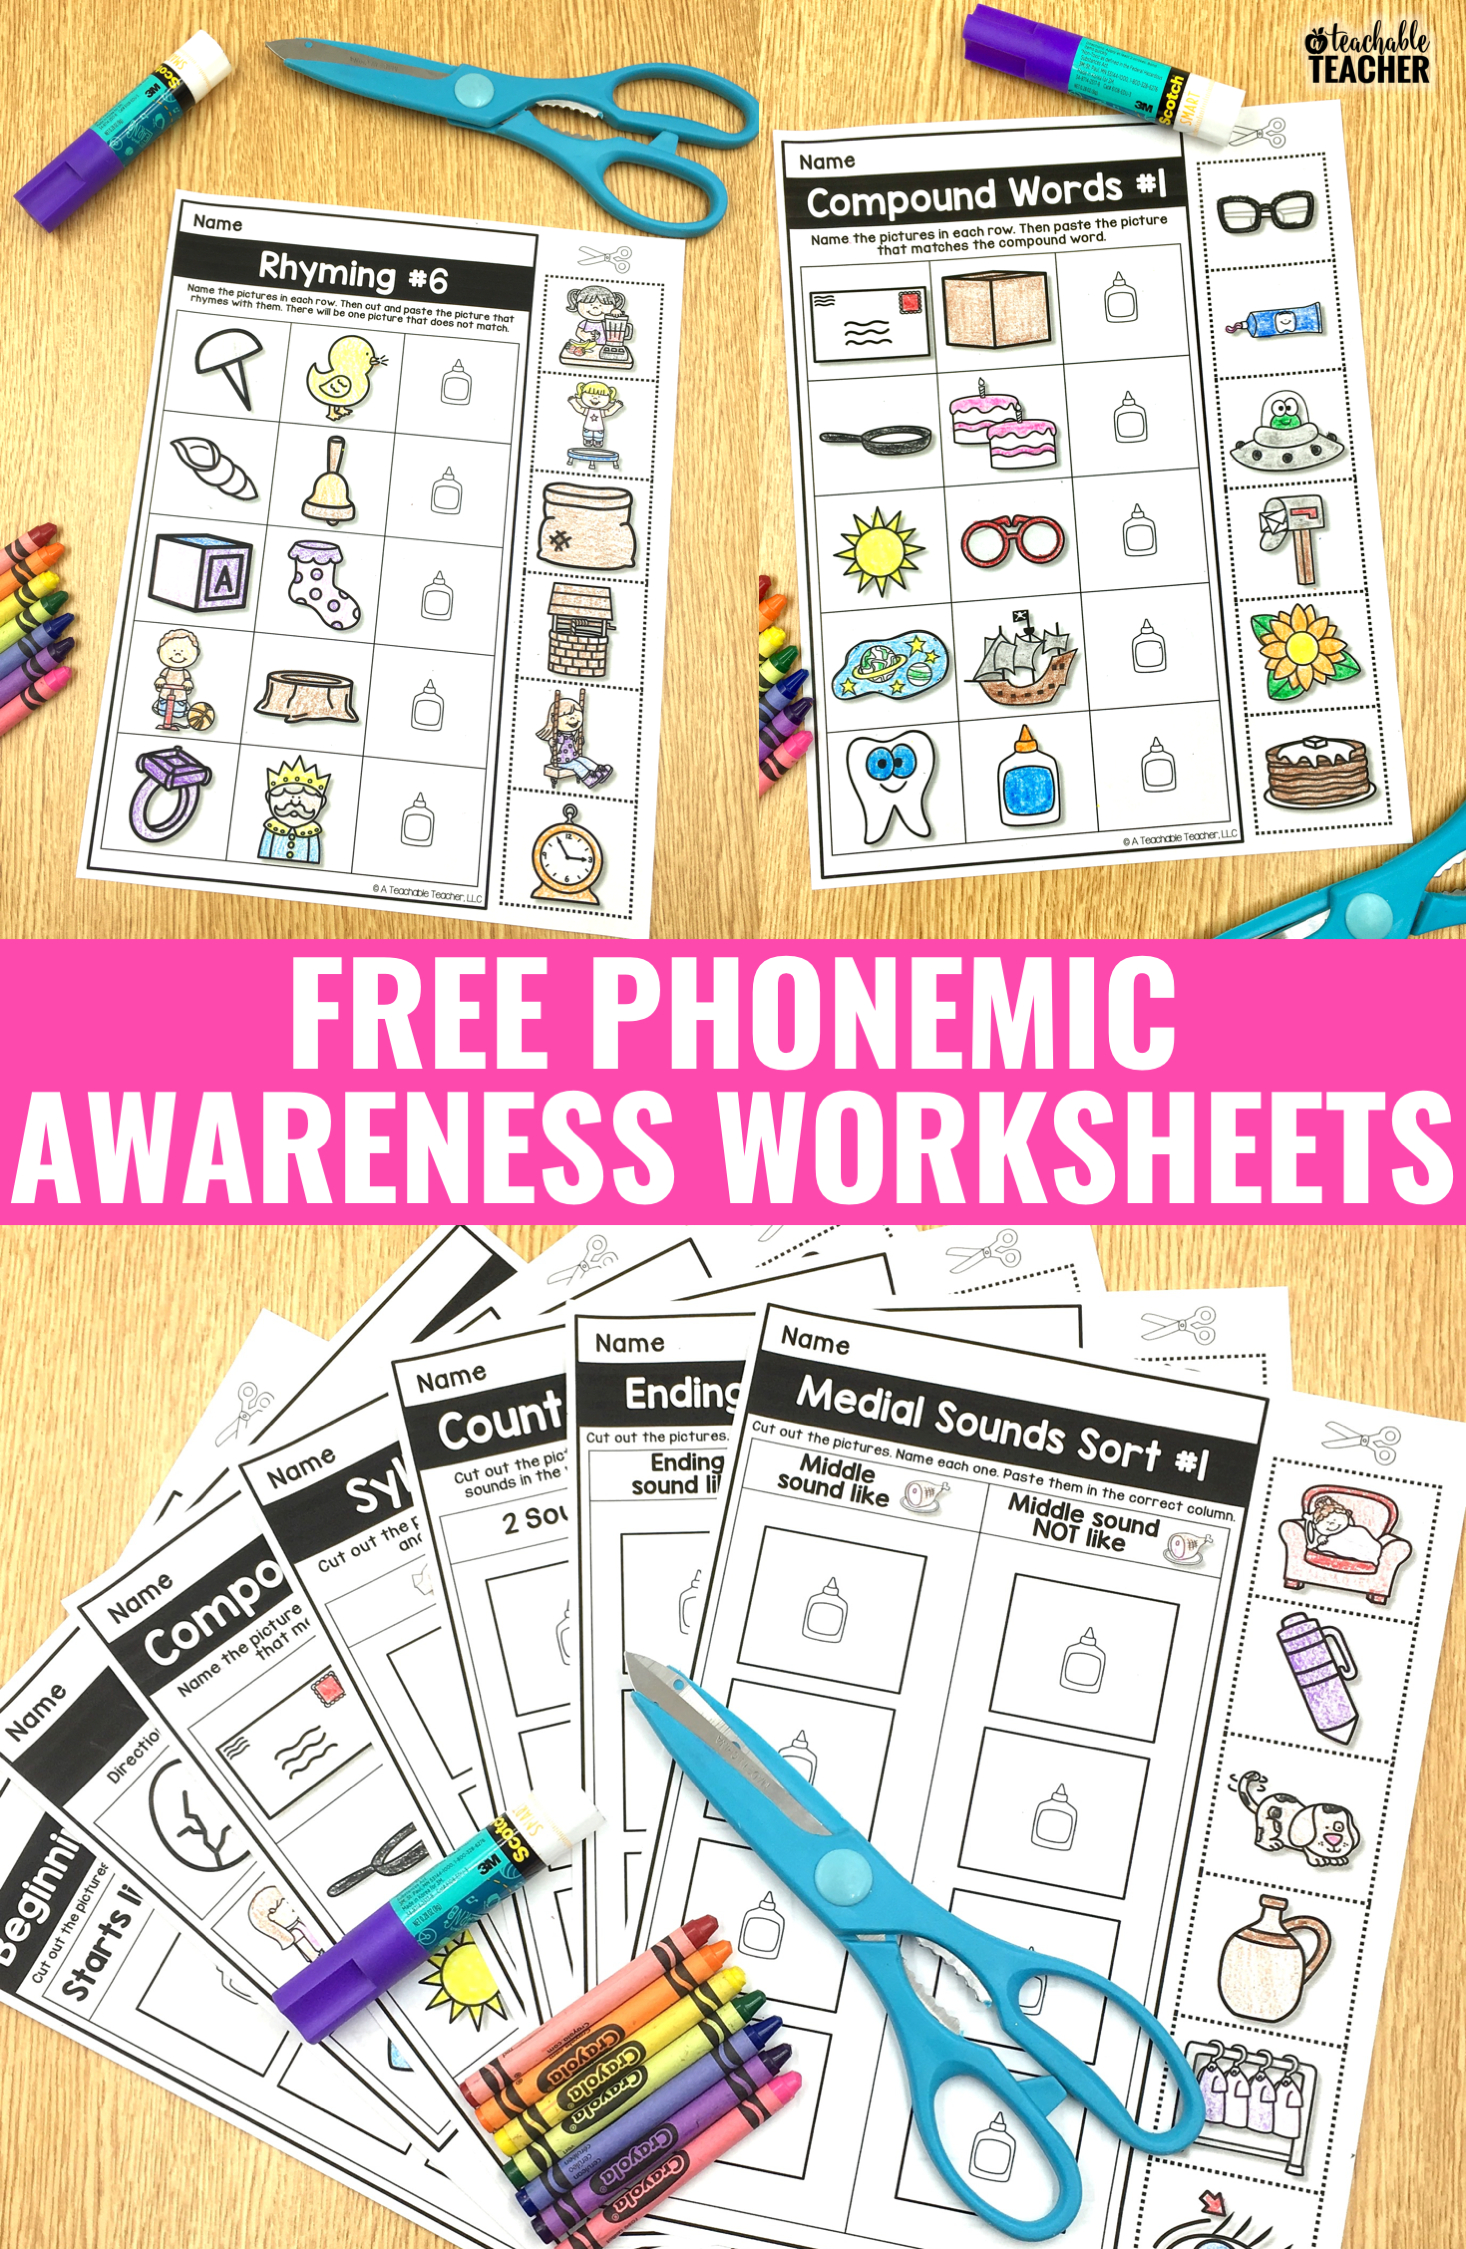 Free Phonemic Awareness Worksheets - Interactive And Picture-Based | Free Printable Phoneme Segmentation Worksheets